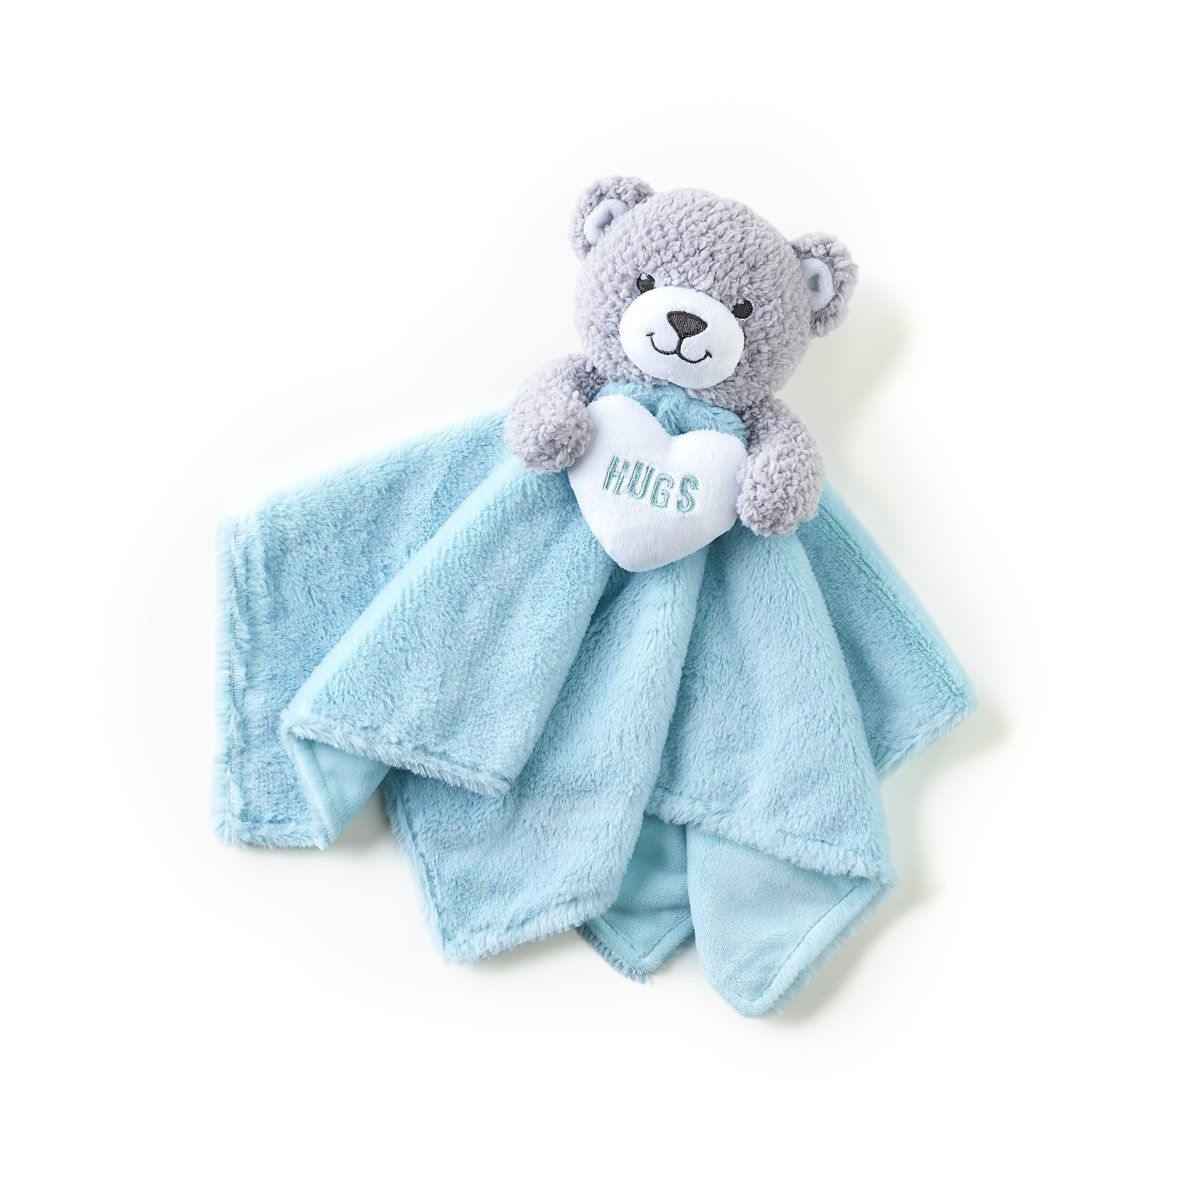 17 Exhilarating Sewing Teddy Bears Ideas Blue Teddy Bear Teddy Bear Toys Teddy Bear Plush